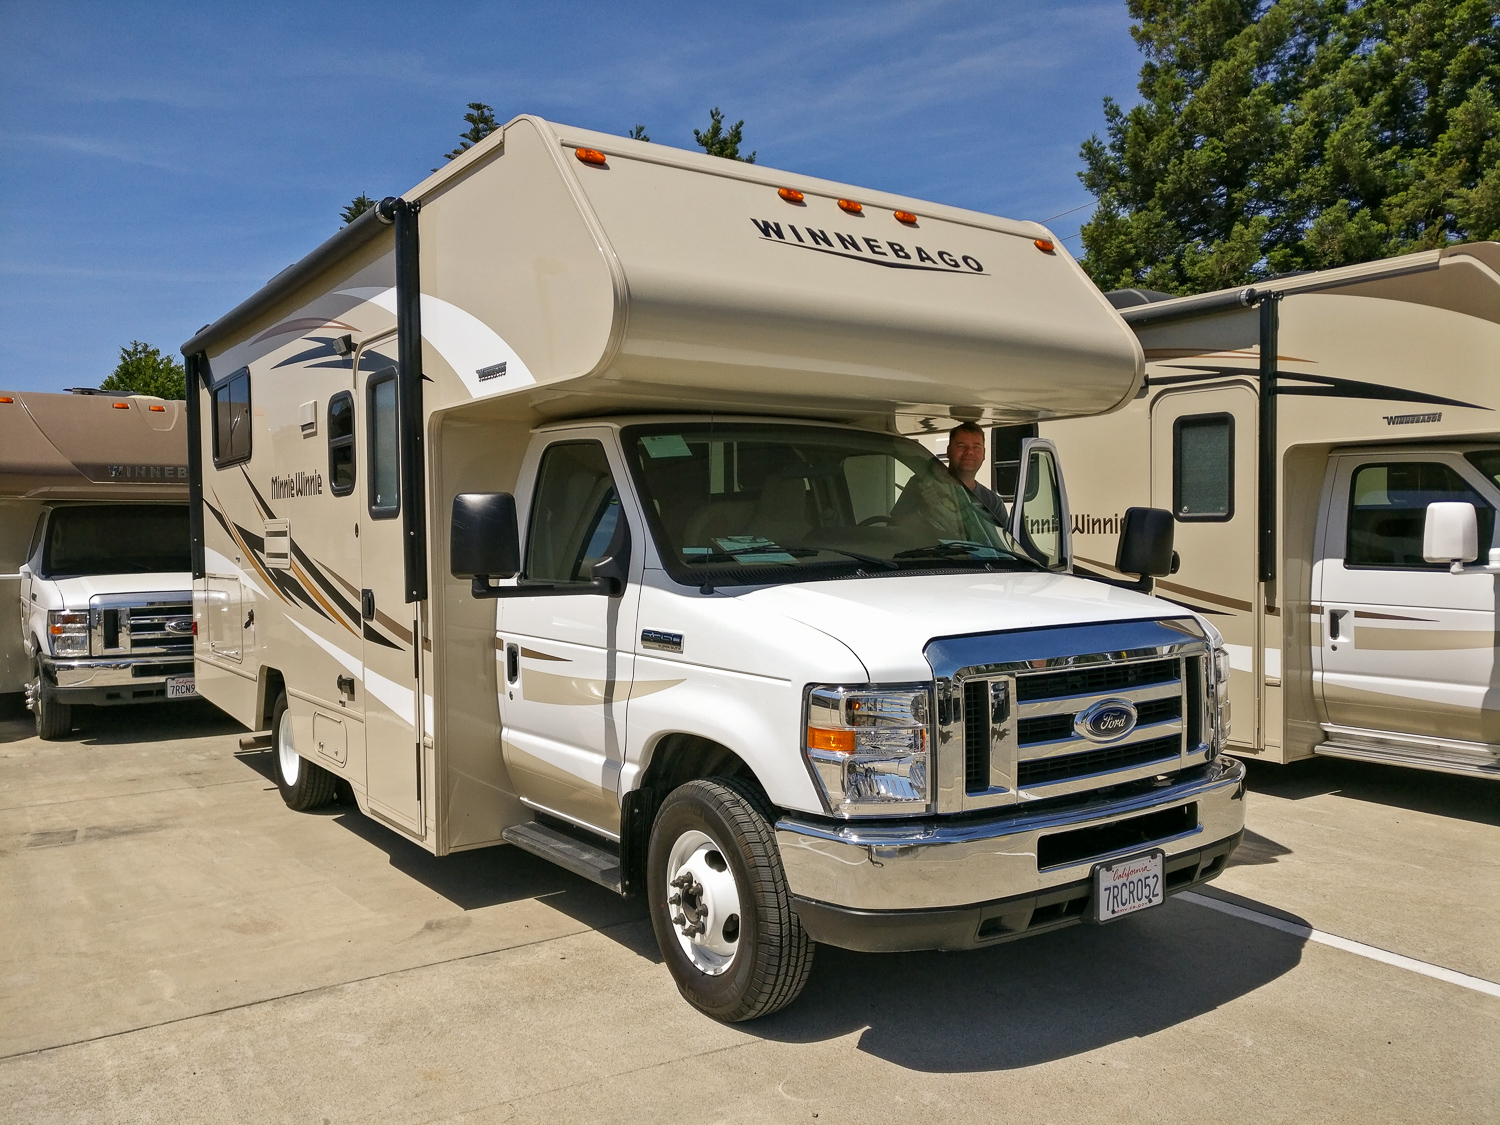 The gear around the gear - a 21ft RV rented for the road trip